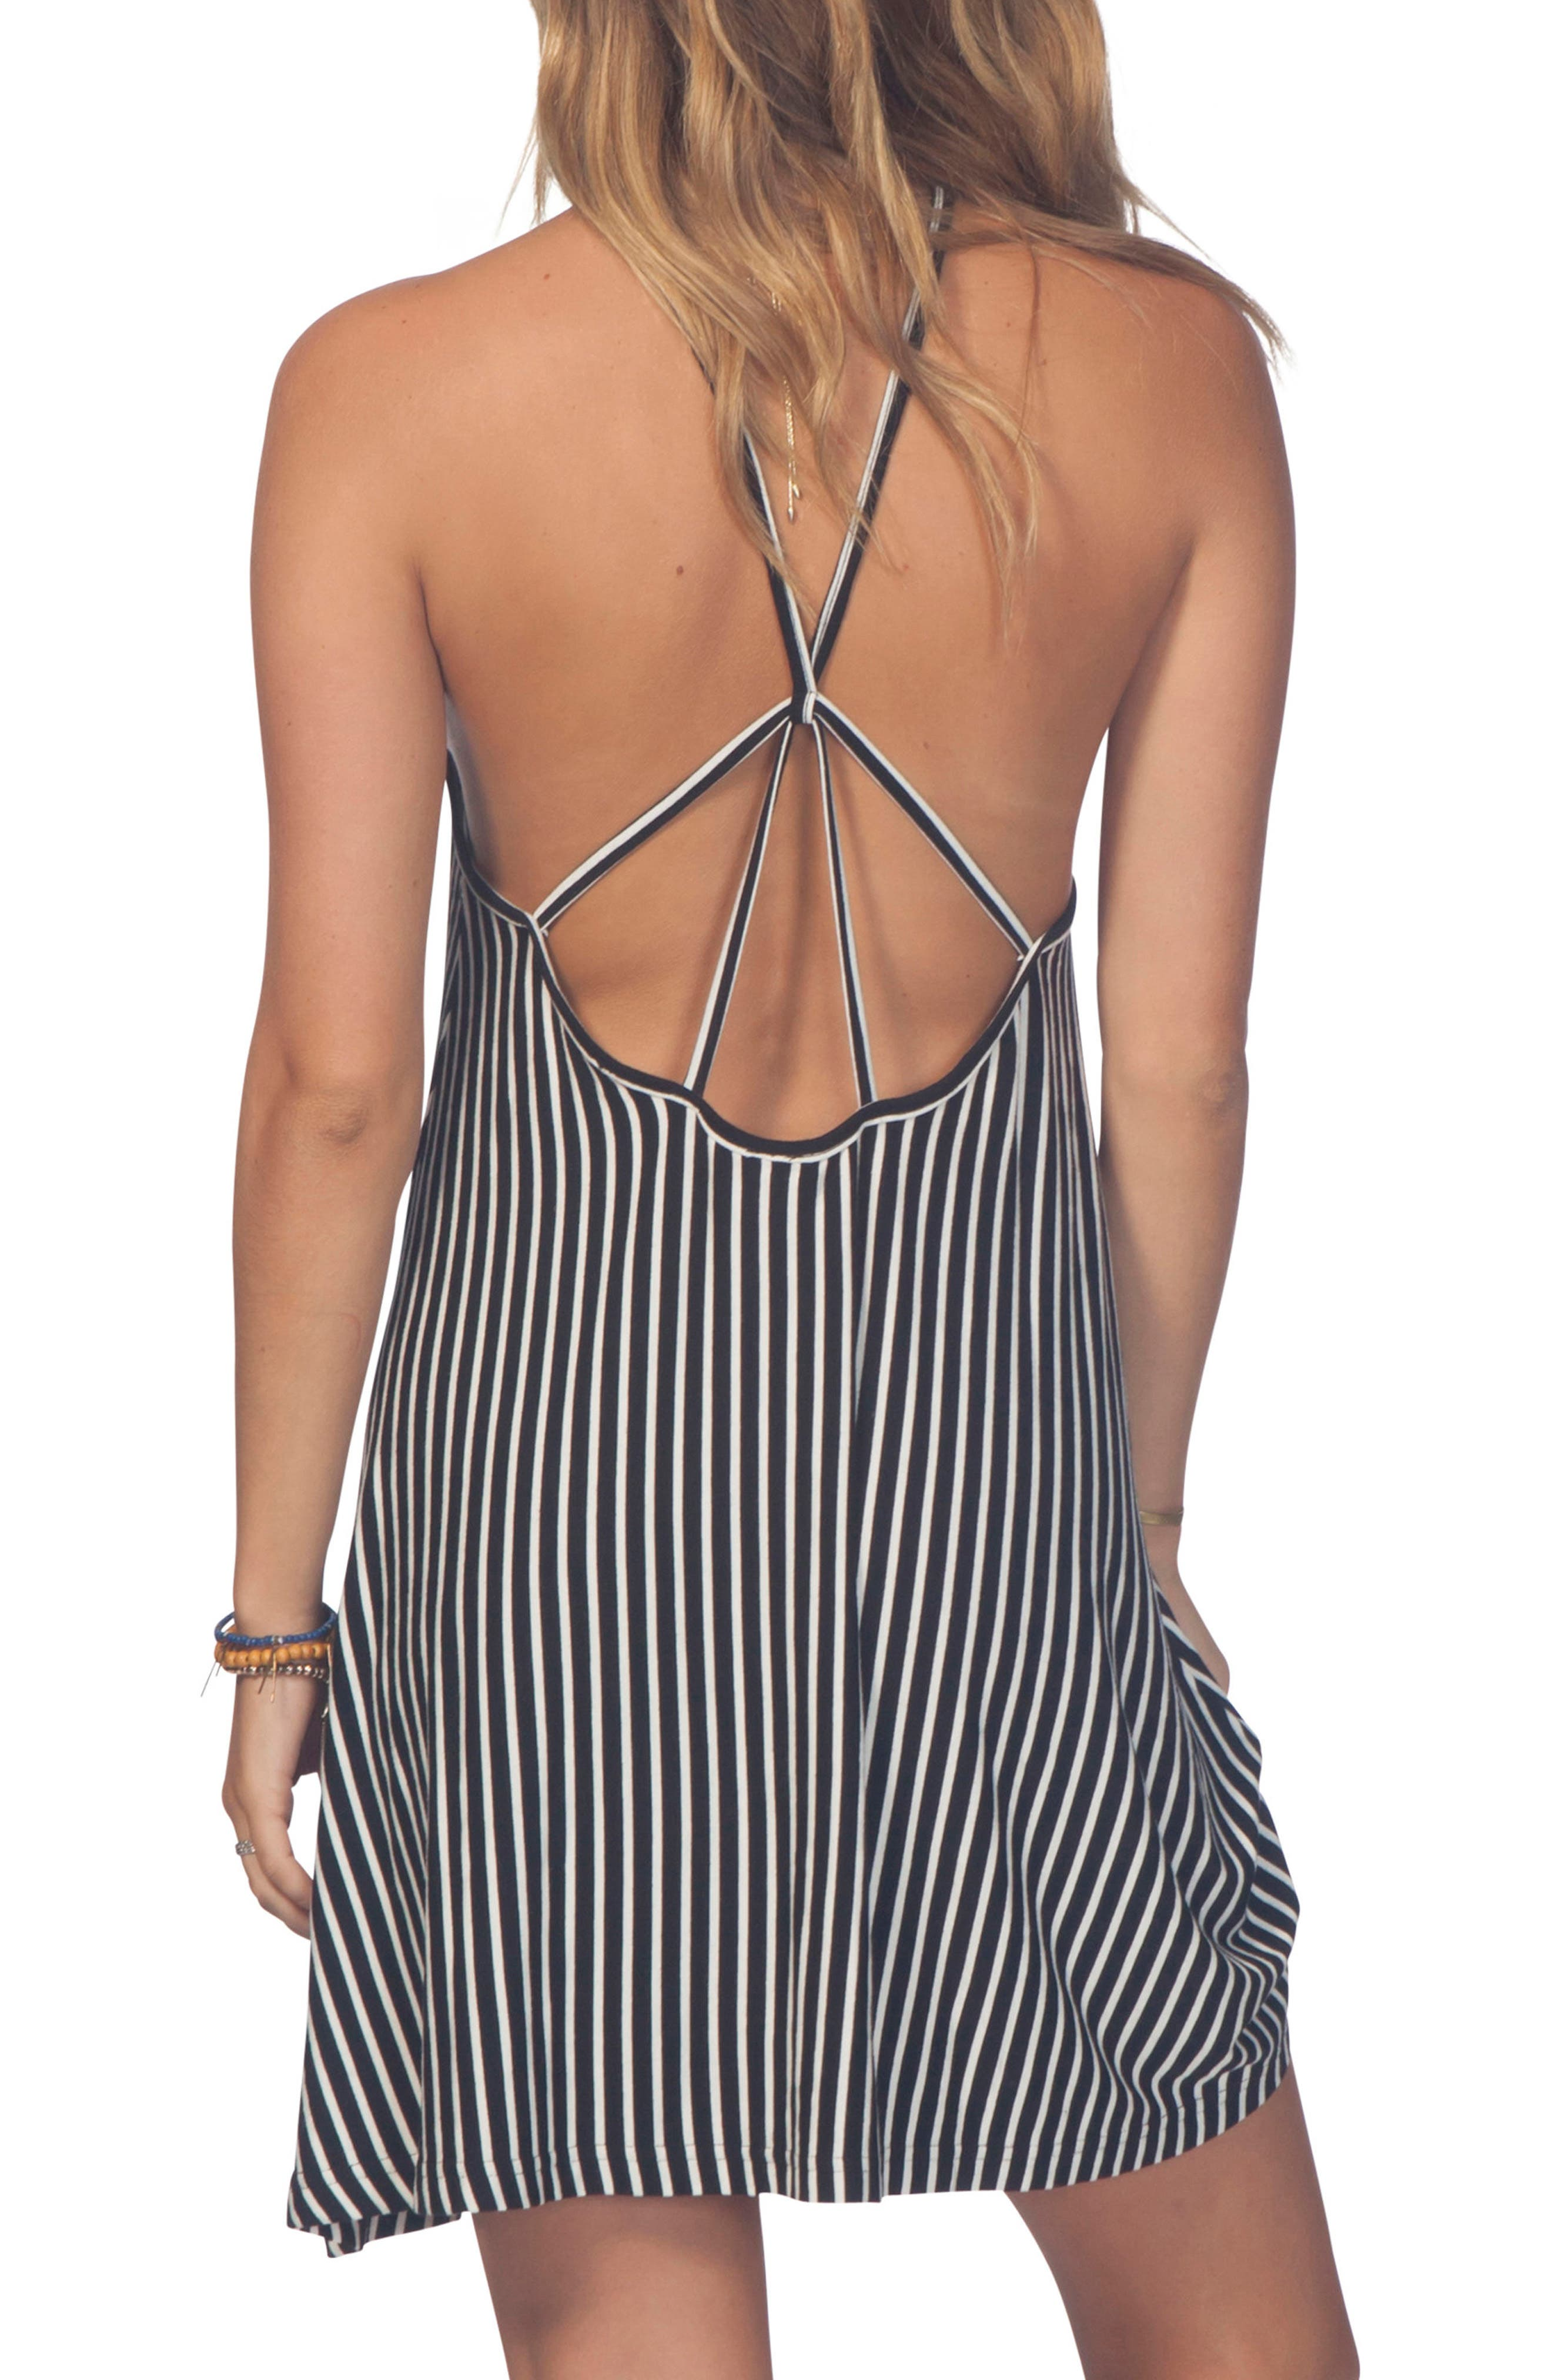 Day Tripper Strappy Swing Dress,                             Alternate thumbnail 2, color,                             001